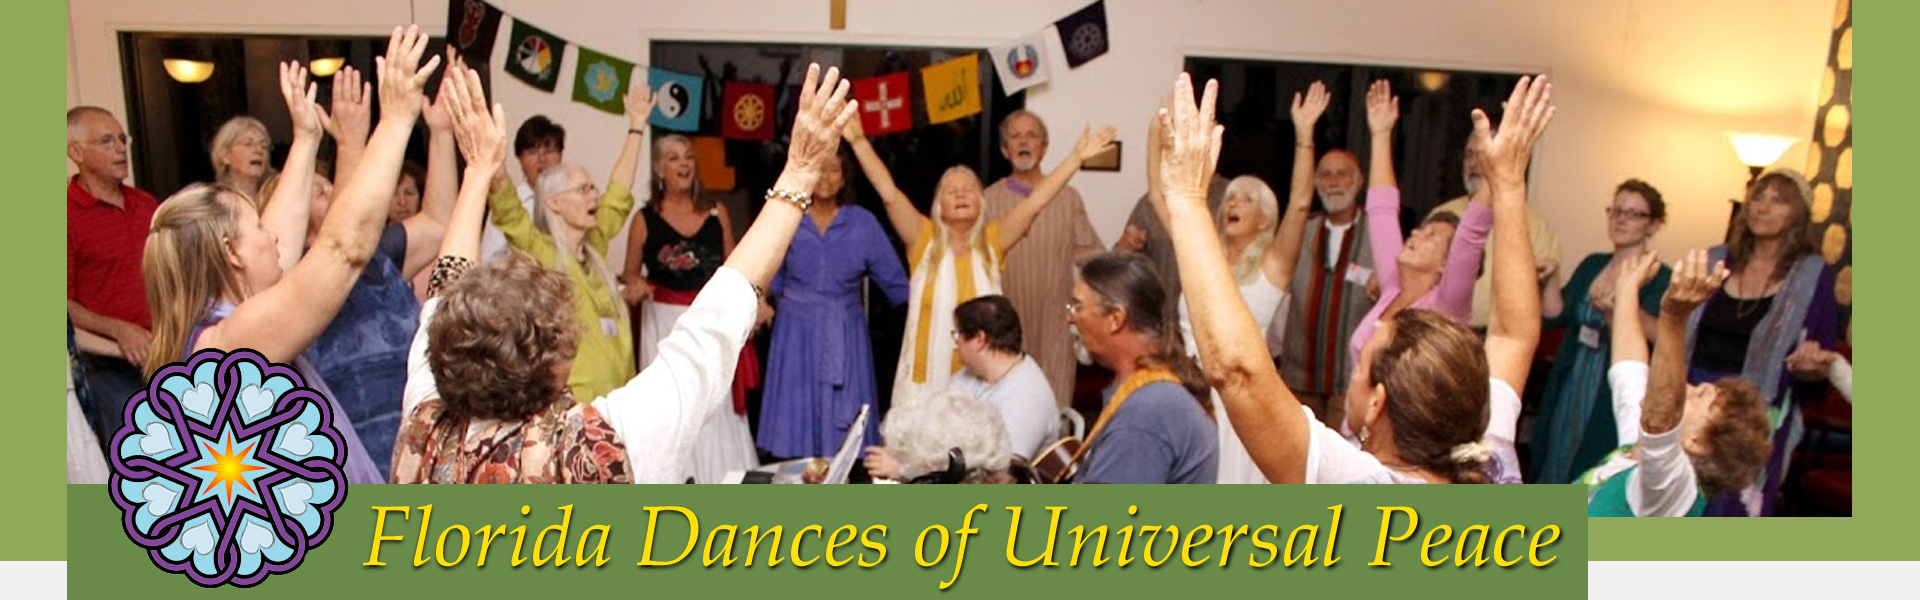 Florida Dances of Universal Peace